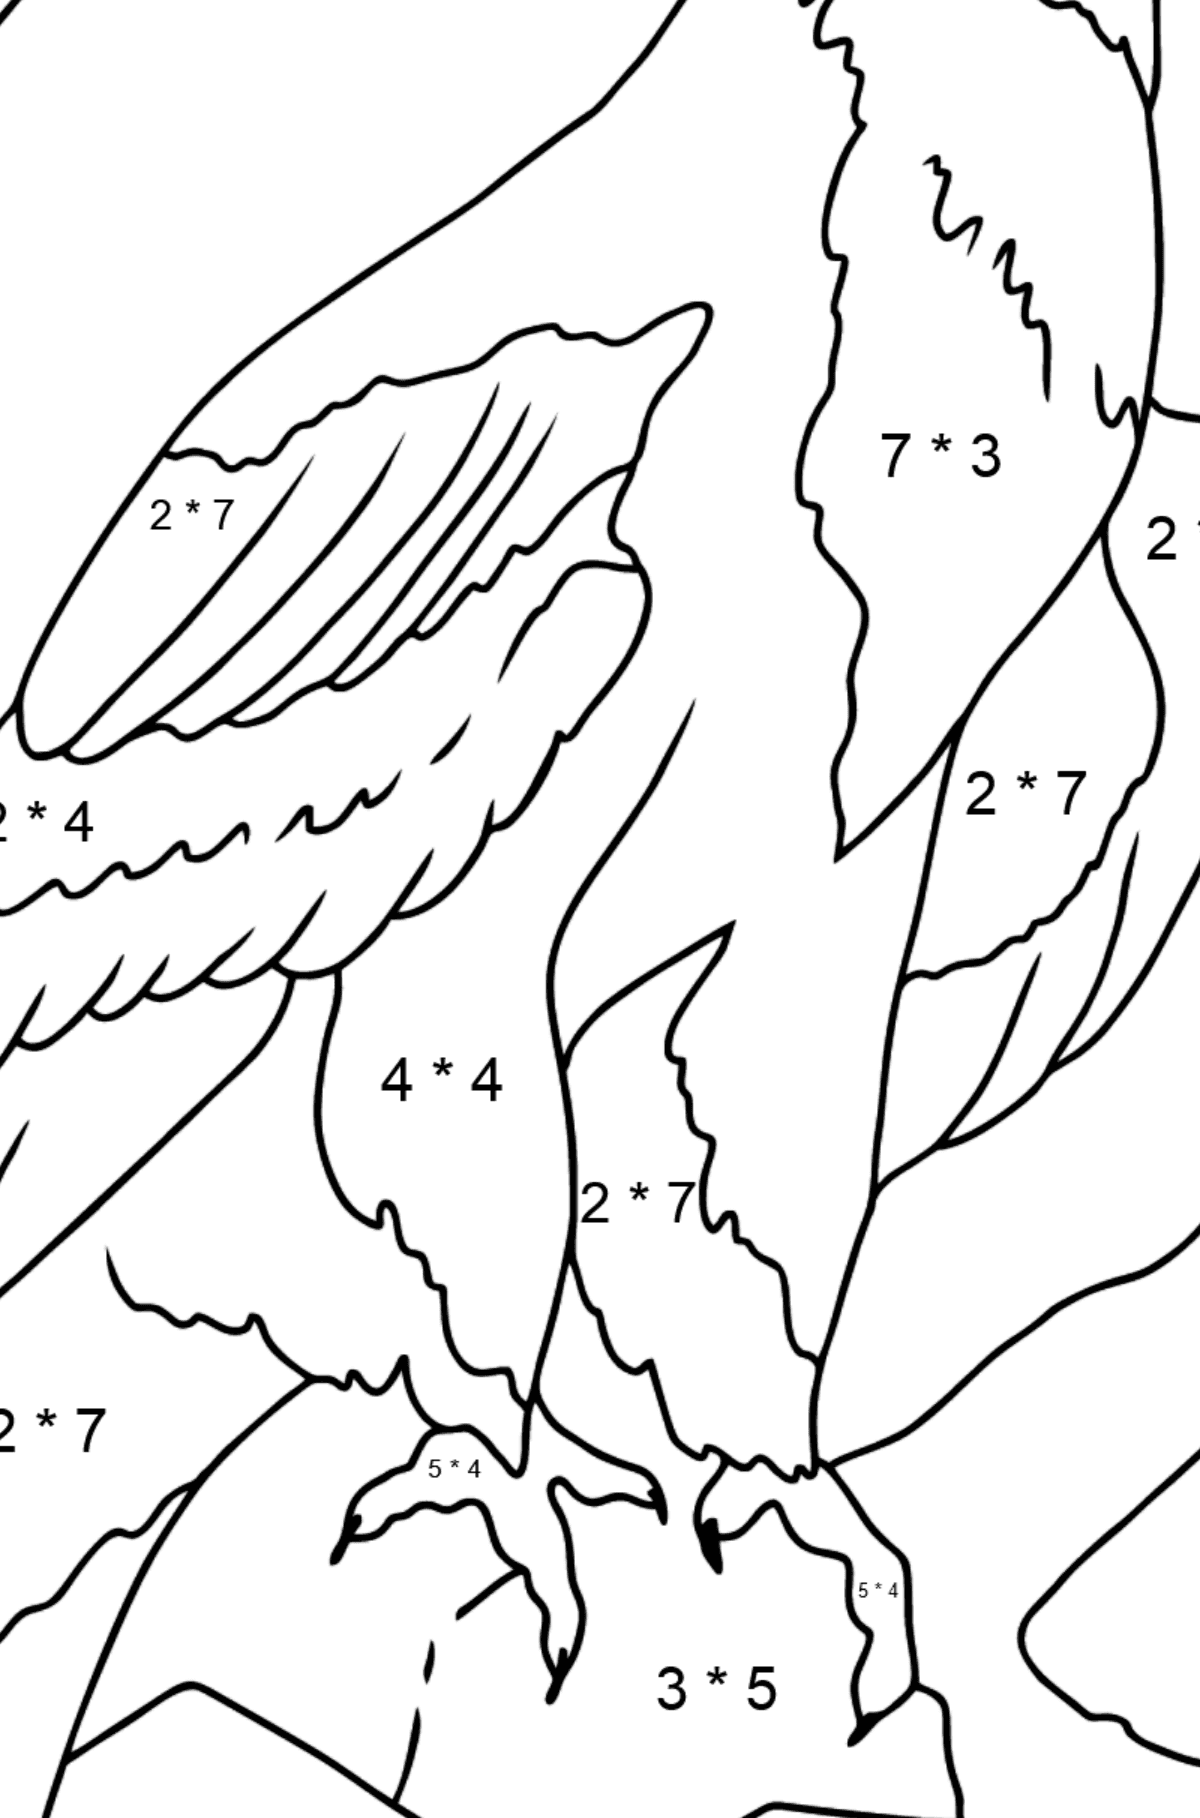 Coloring Page - An Alpine Eagle - Math Coloring - Multiplication for Kids